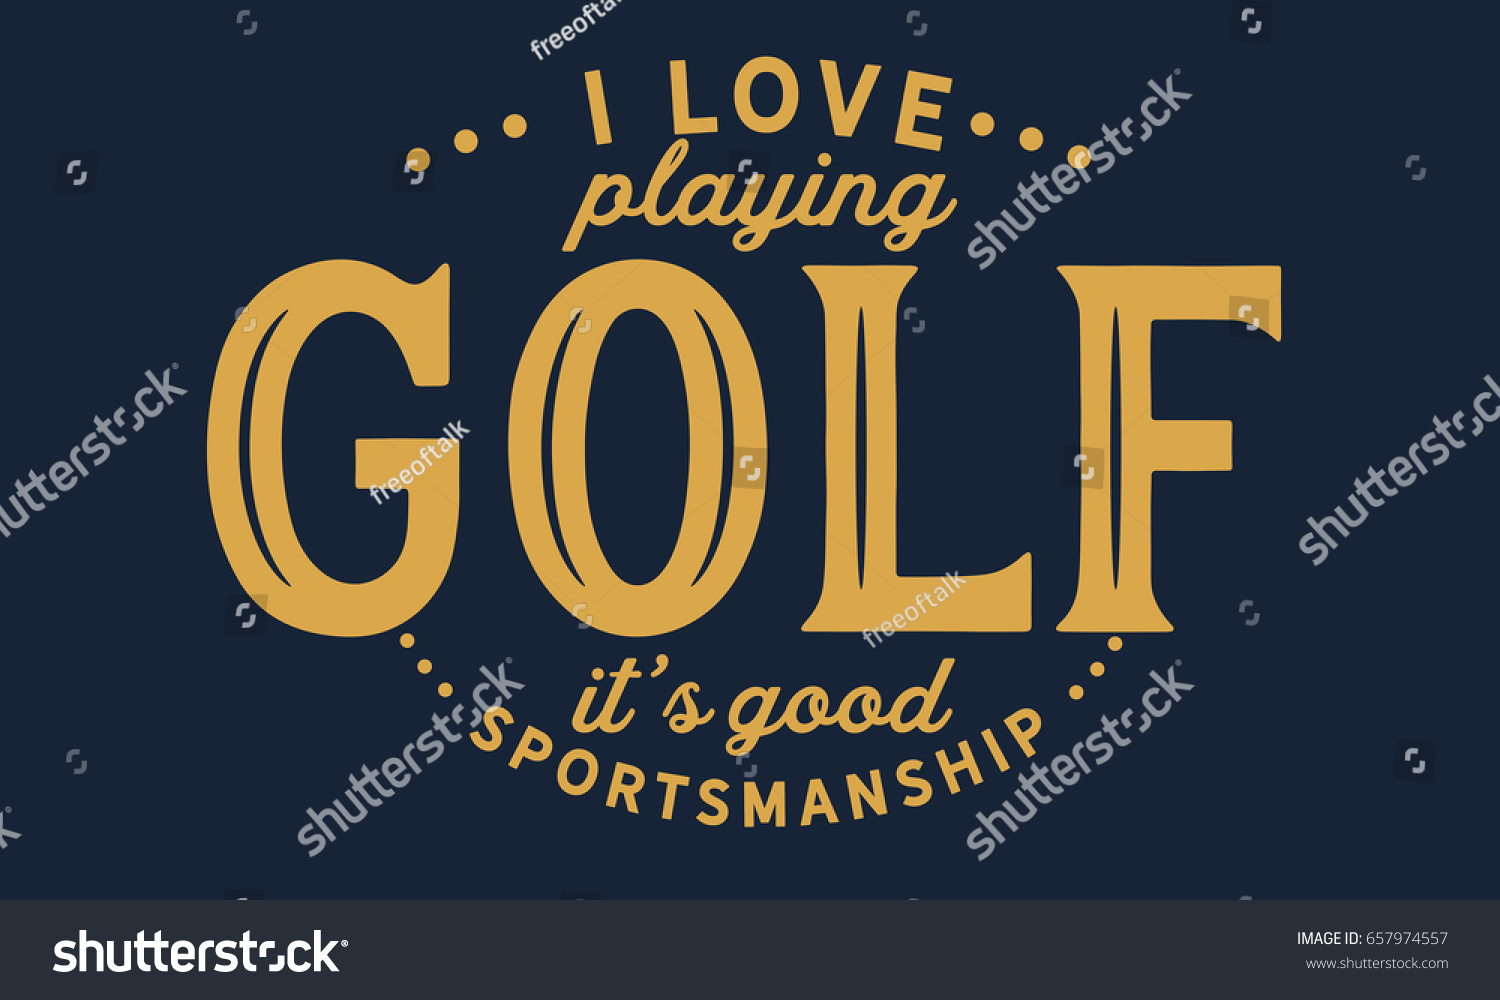 Golf Love Quotes Glamorous Love Playing Golf Good Sportsmanship Golf Stock Vector 657974557